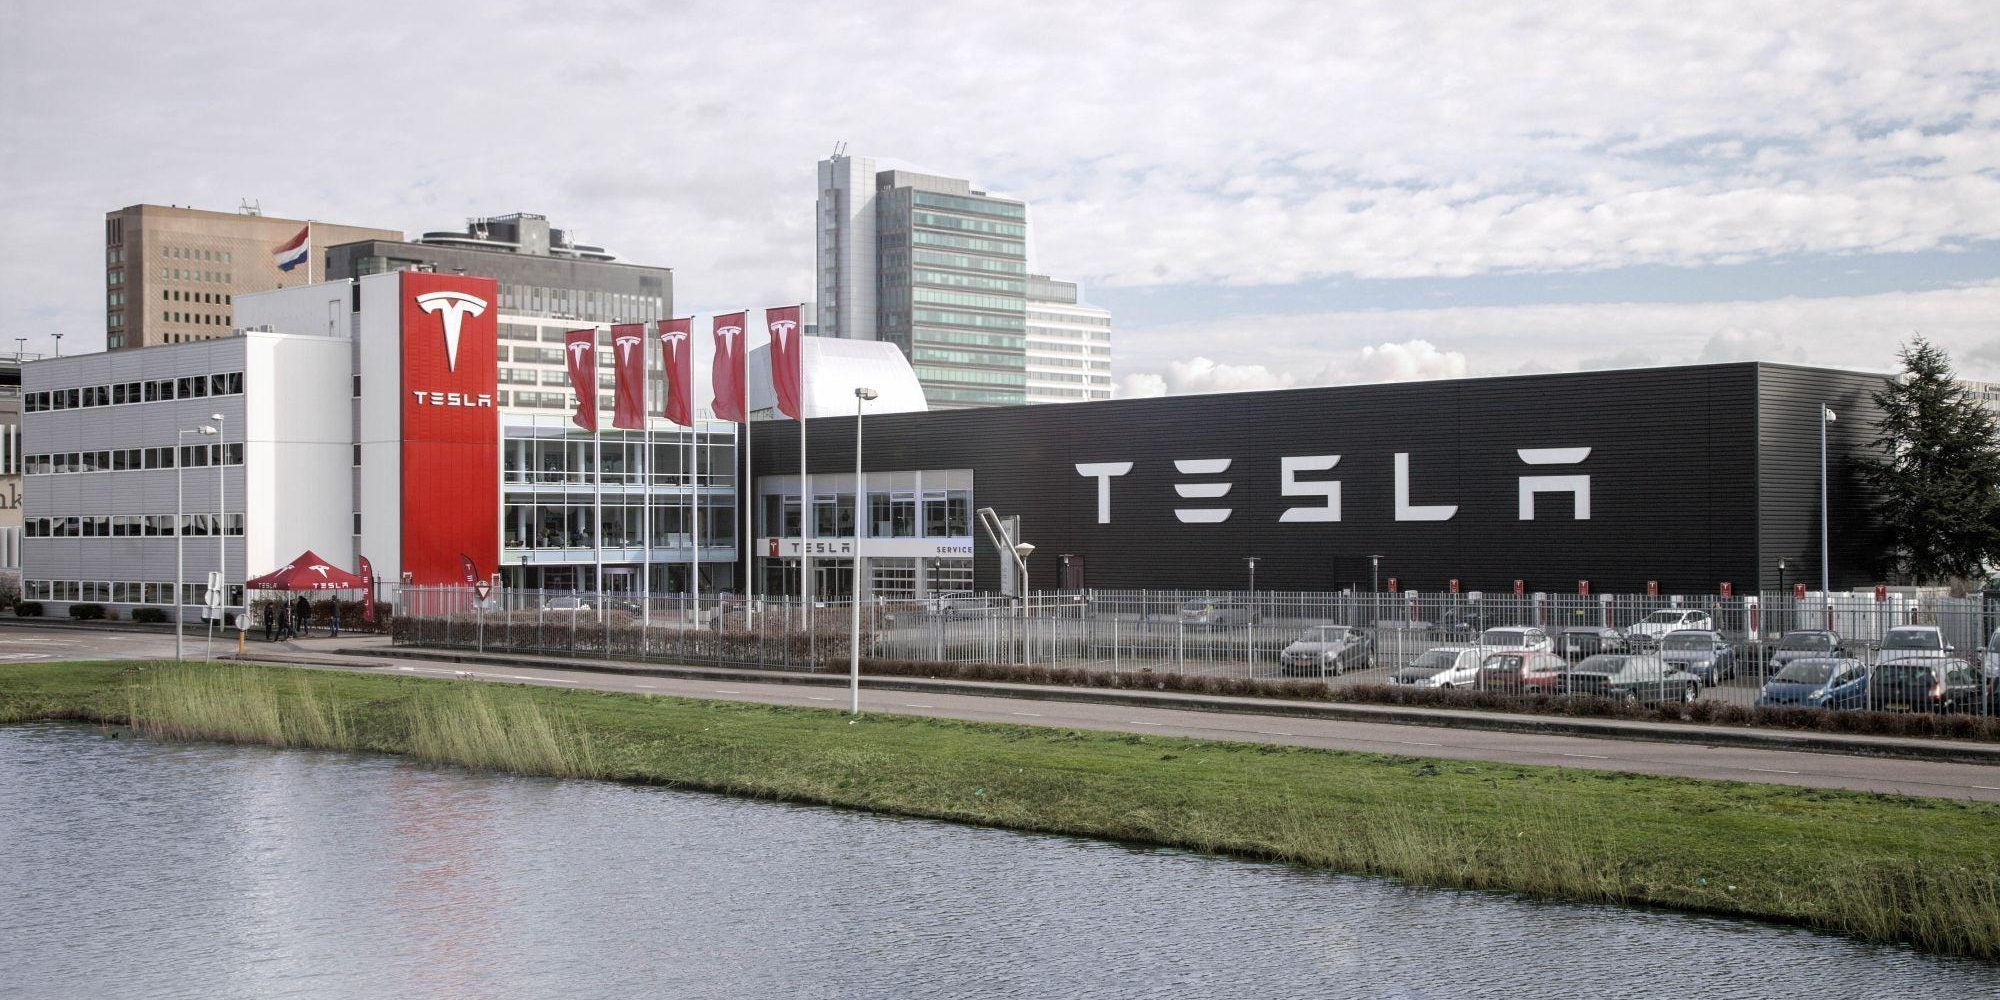 The Netherlands has surpassed 20 000 Tesla Model 3 registrations